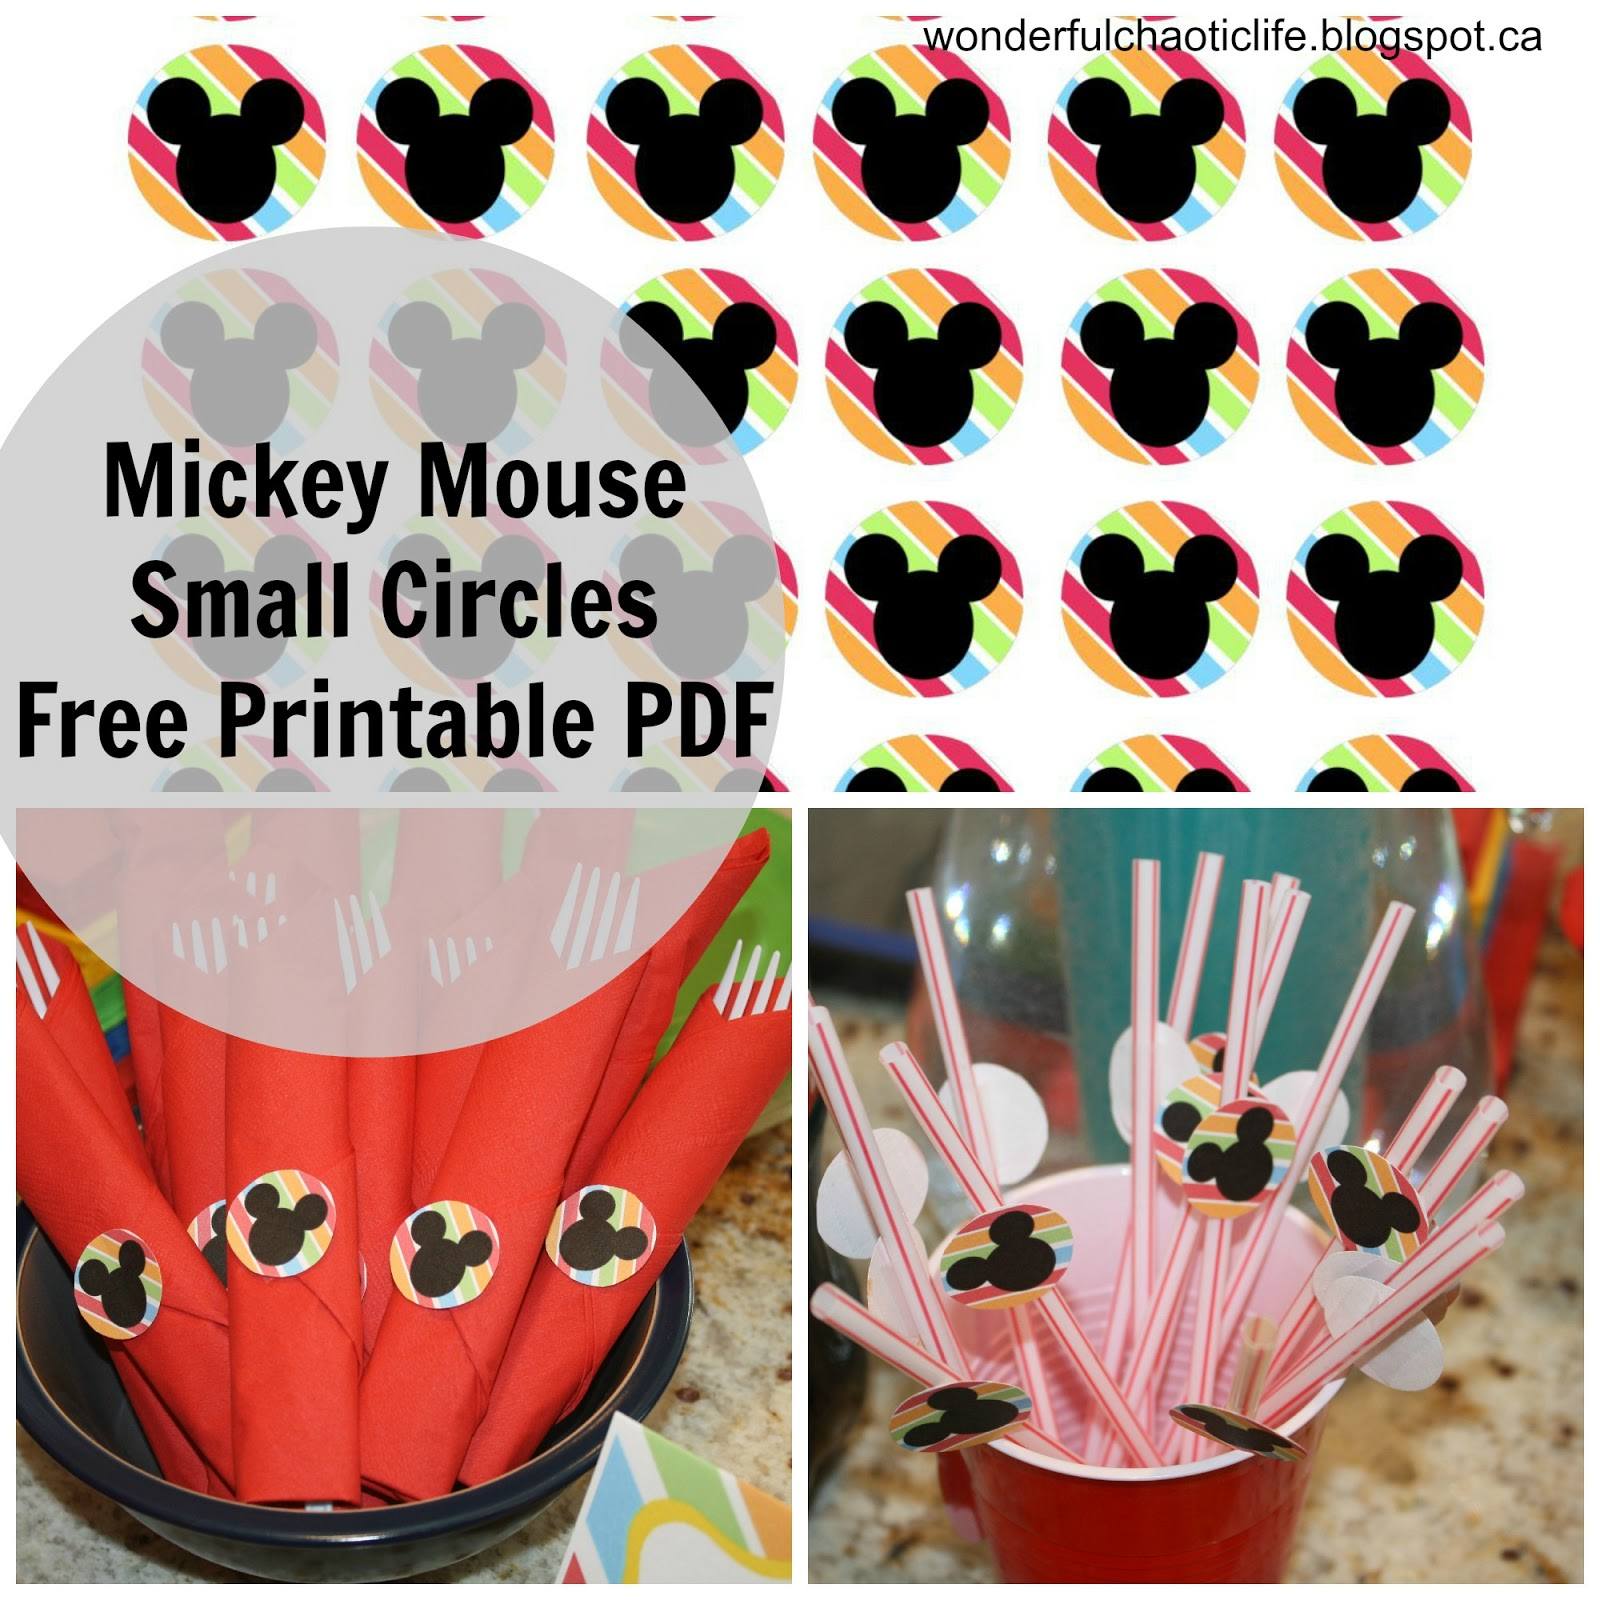 Mickey Mouse Birthday Images Free ~ It s my wonderful chaotic life mickey mouse birthday party free printables